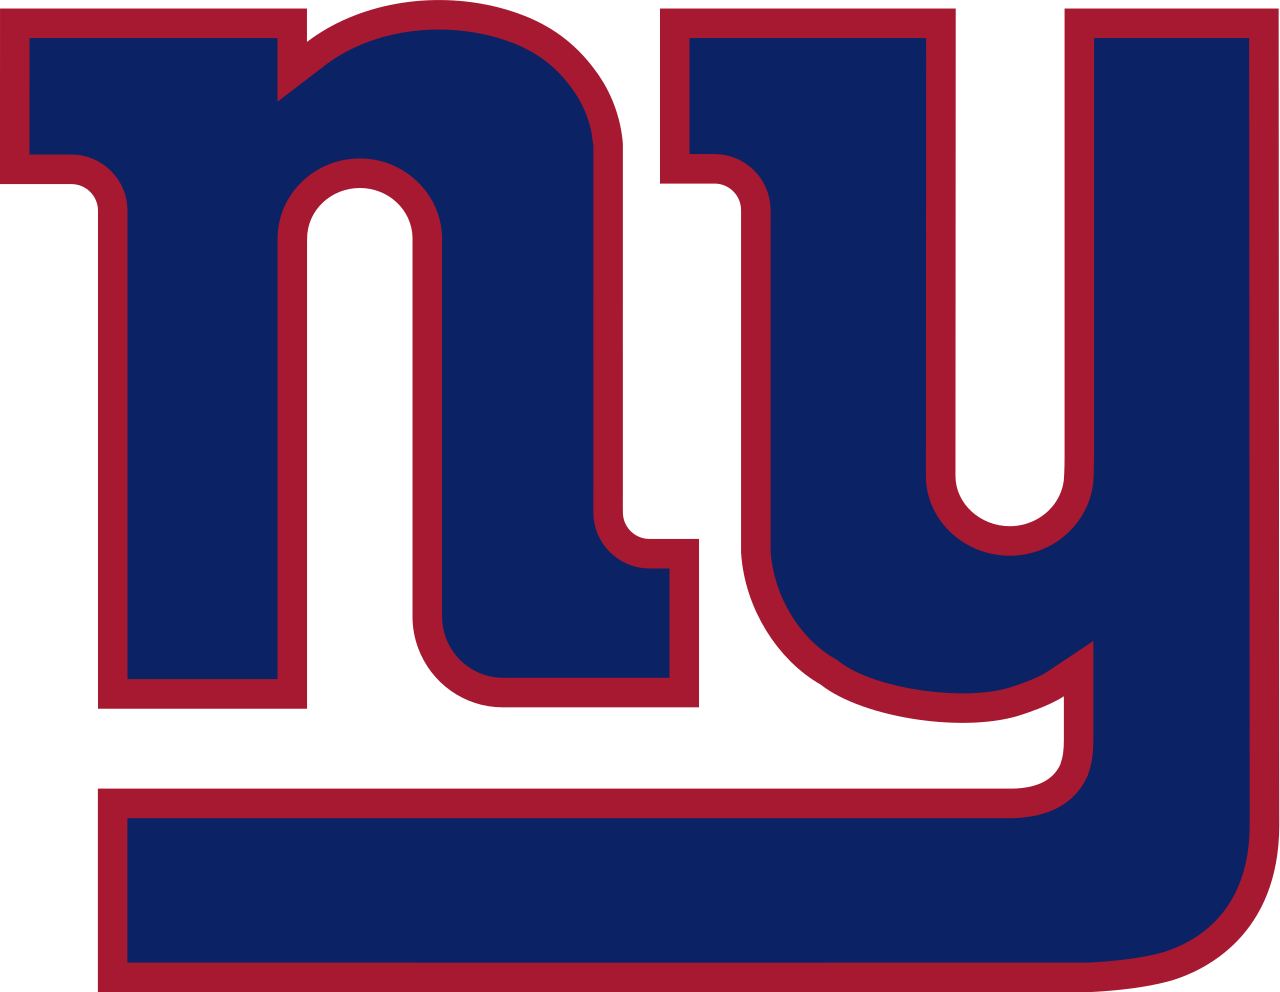 49ers football clipart png royalty free download The New York Giants Name Dave Gettleman Their General Manager ... png royalty free download